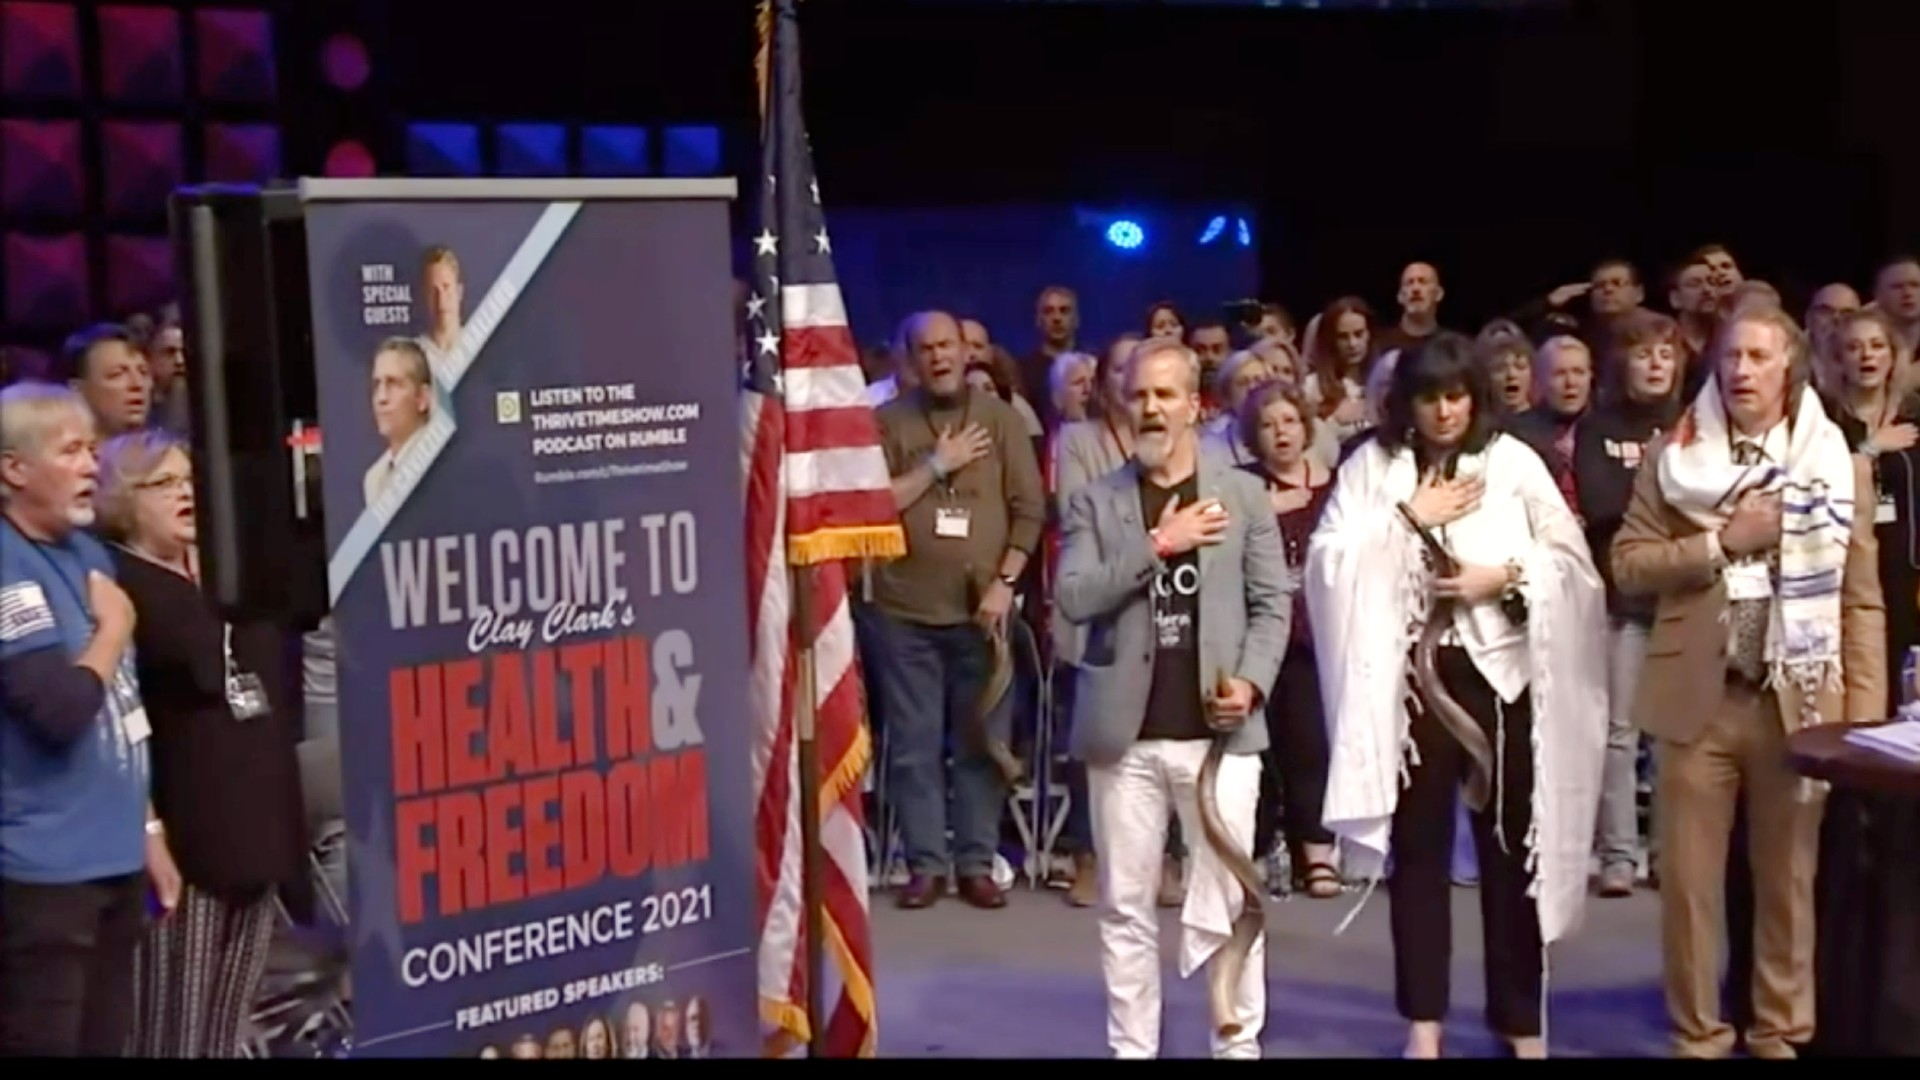 LIVE: The 2021 Health and Freedom Conference